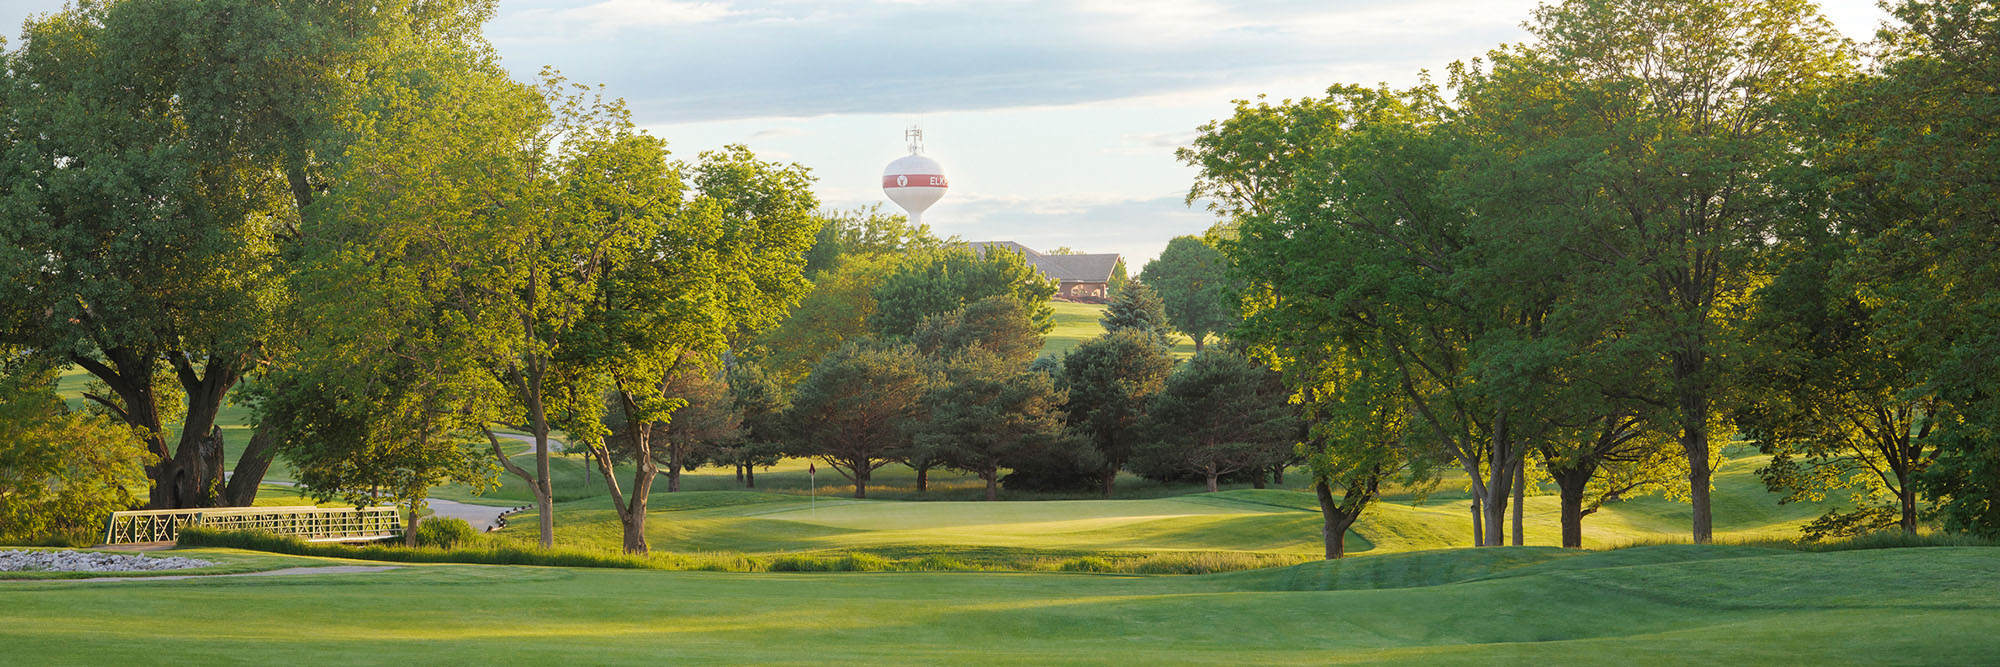 Golf Course Image - Indian Creek Red Feather No. 6